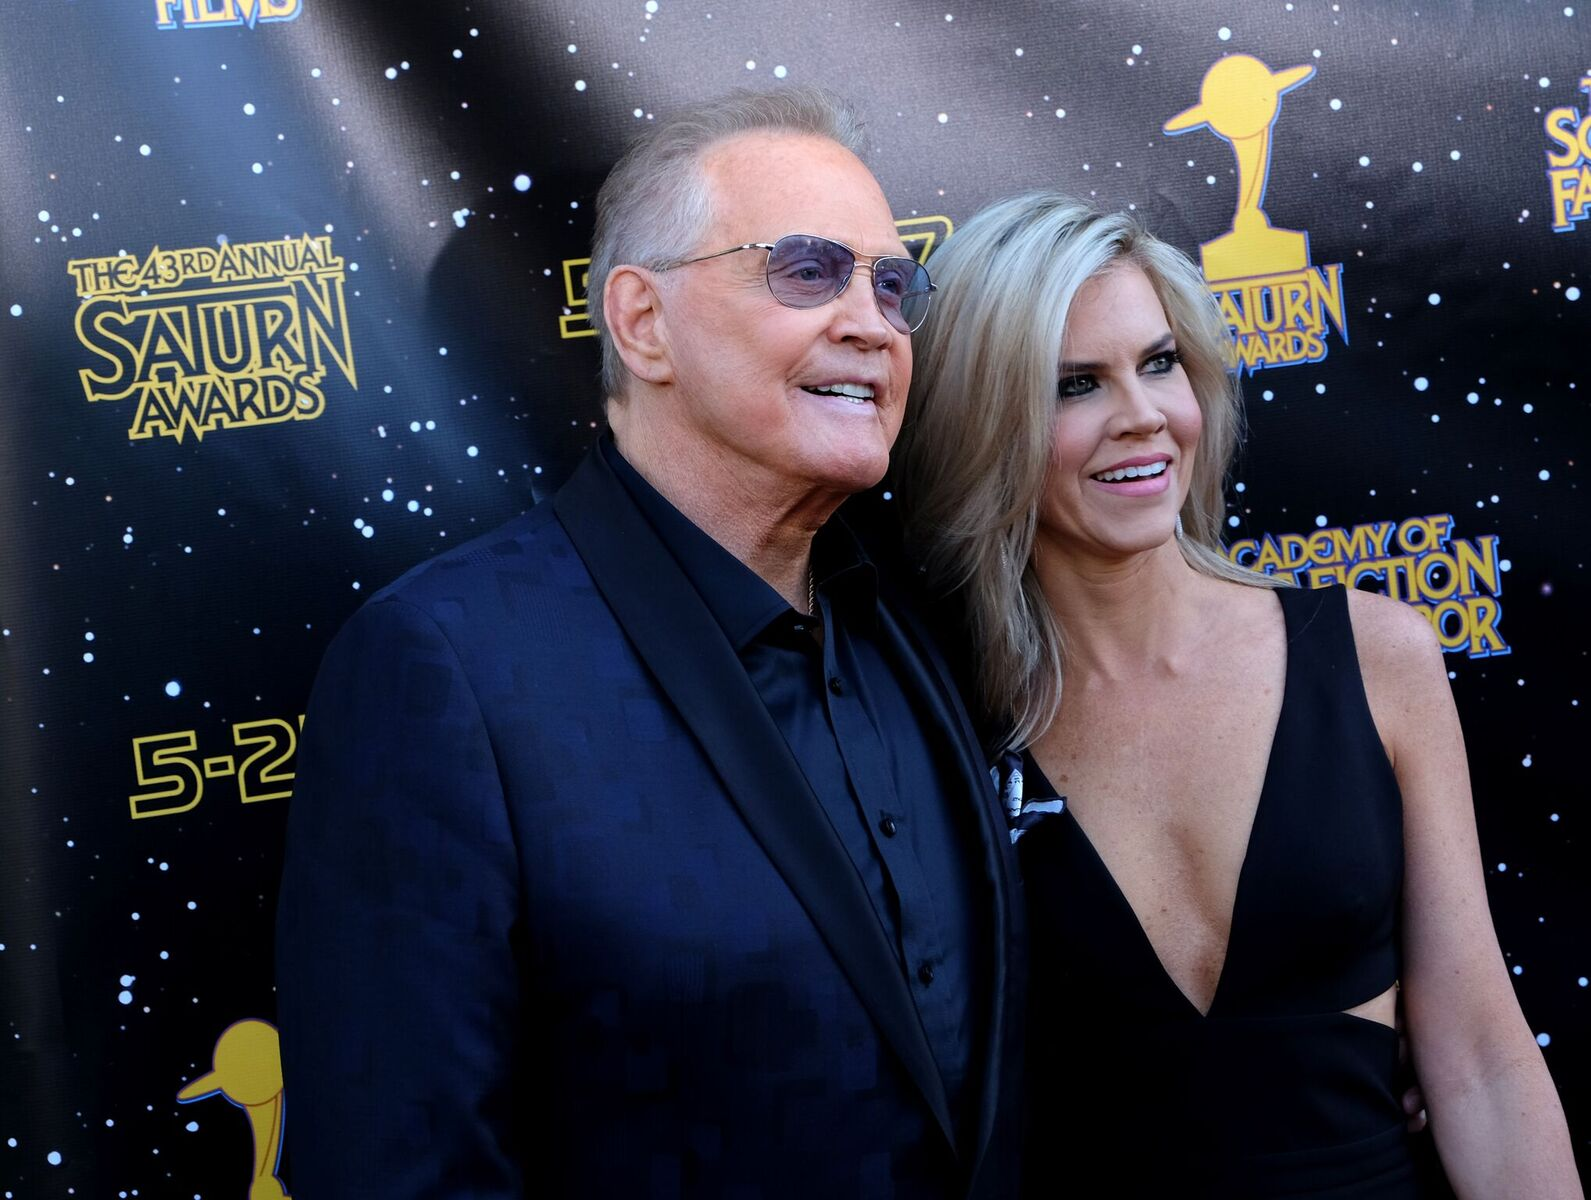 Lee Majors and Faith Majors attend the 43rd Annual Saturn Awards at The Castaway on June 28, 2017 in Burbank, California | Photo: Getty Images